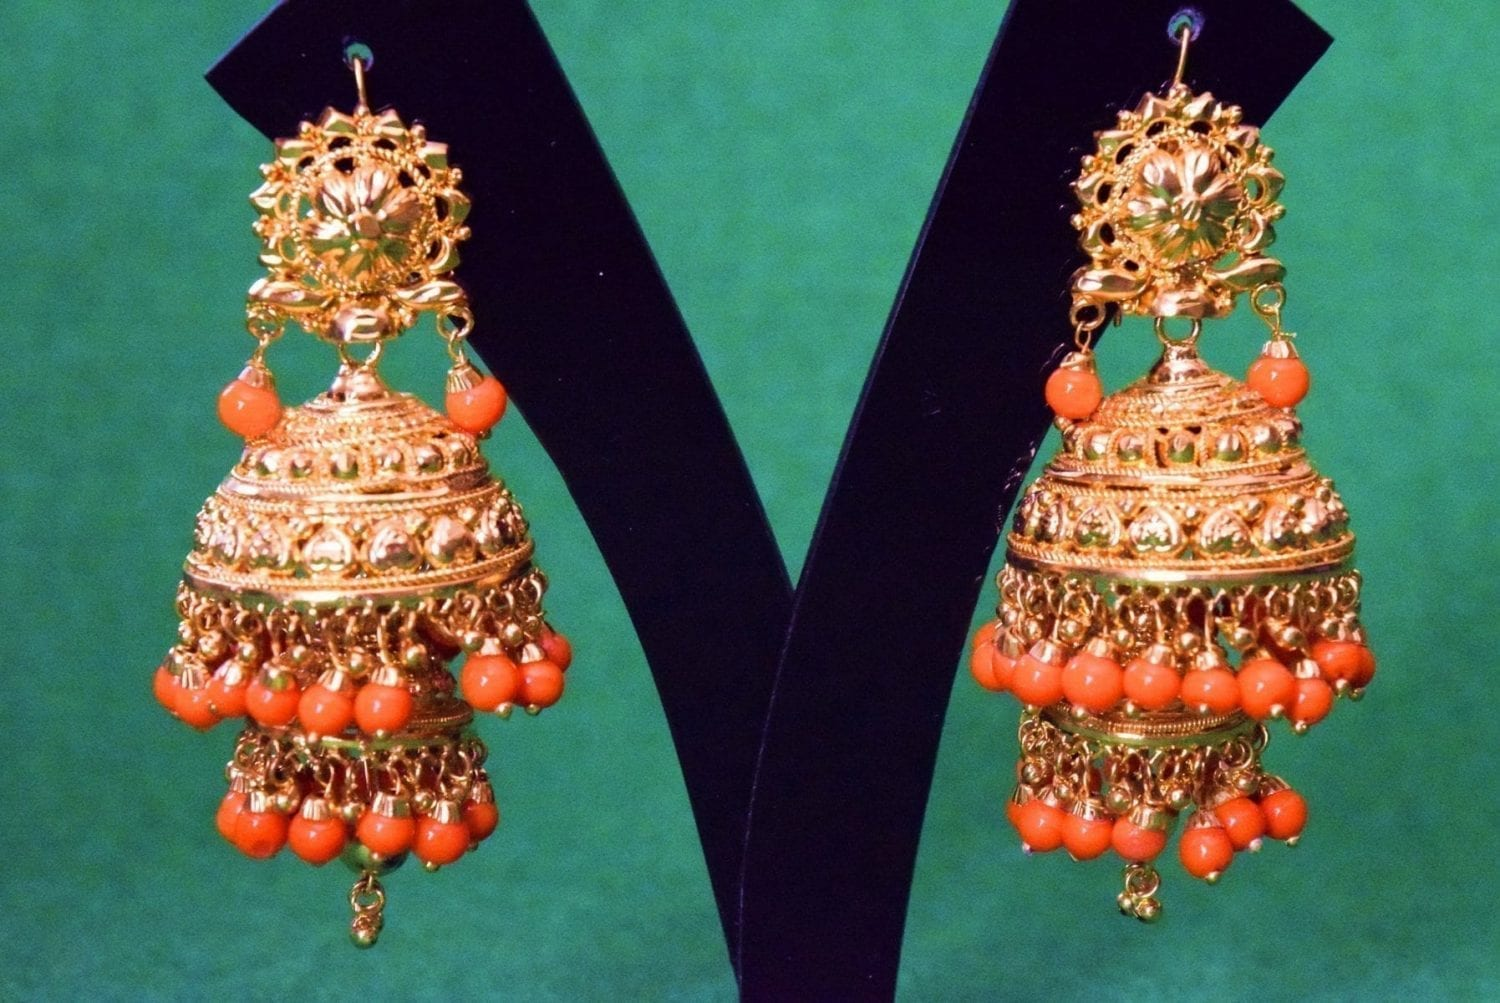 Gold Plated Punjabi Traditional Jewellery Earrings Jhmki Dangles J0357 1